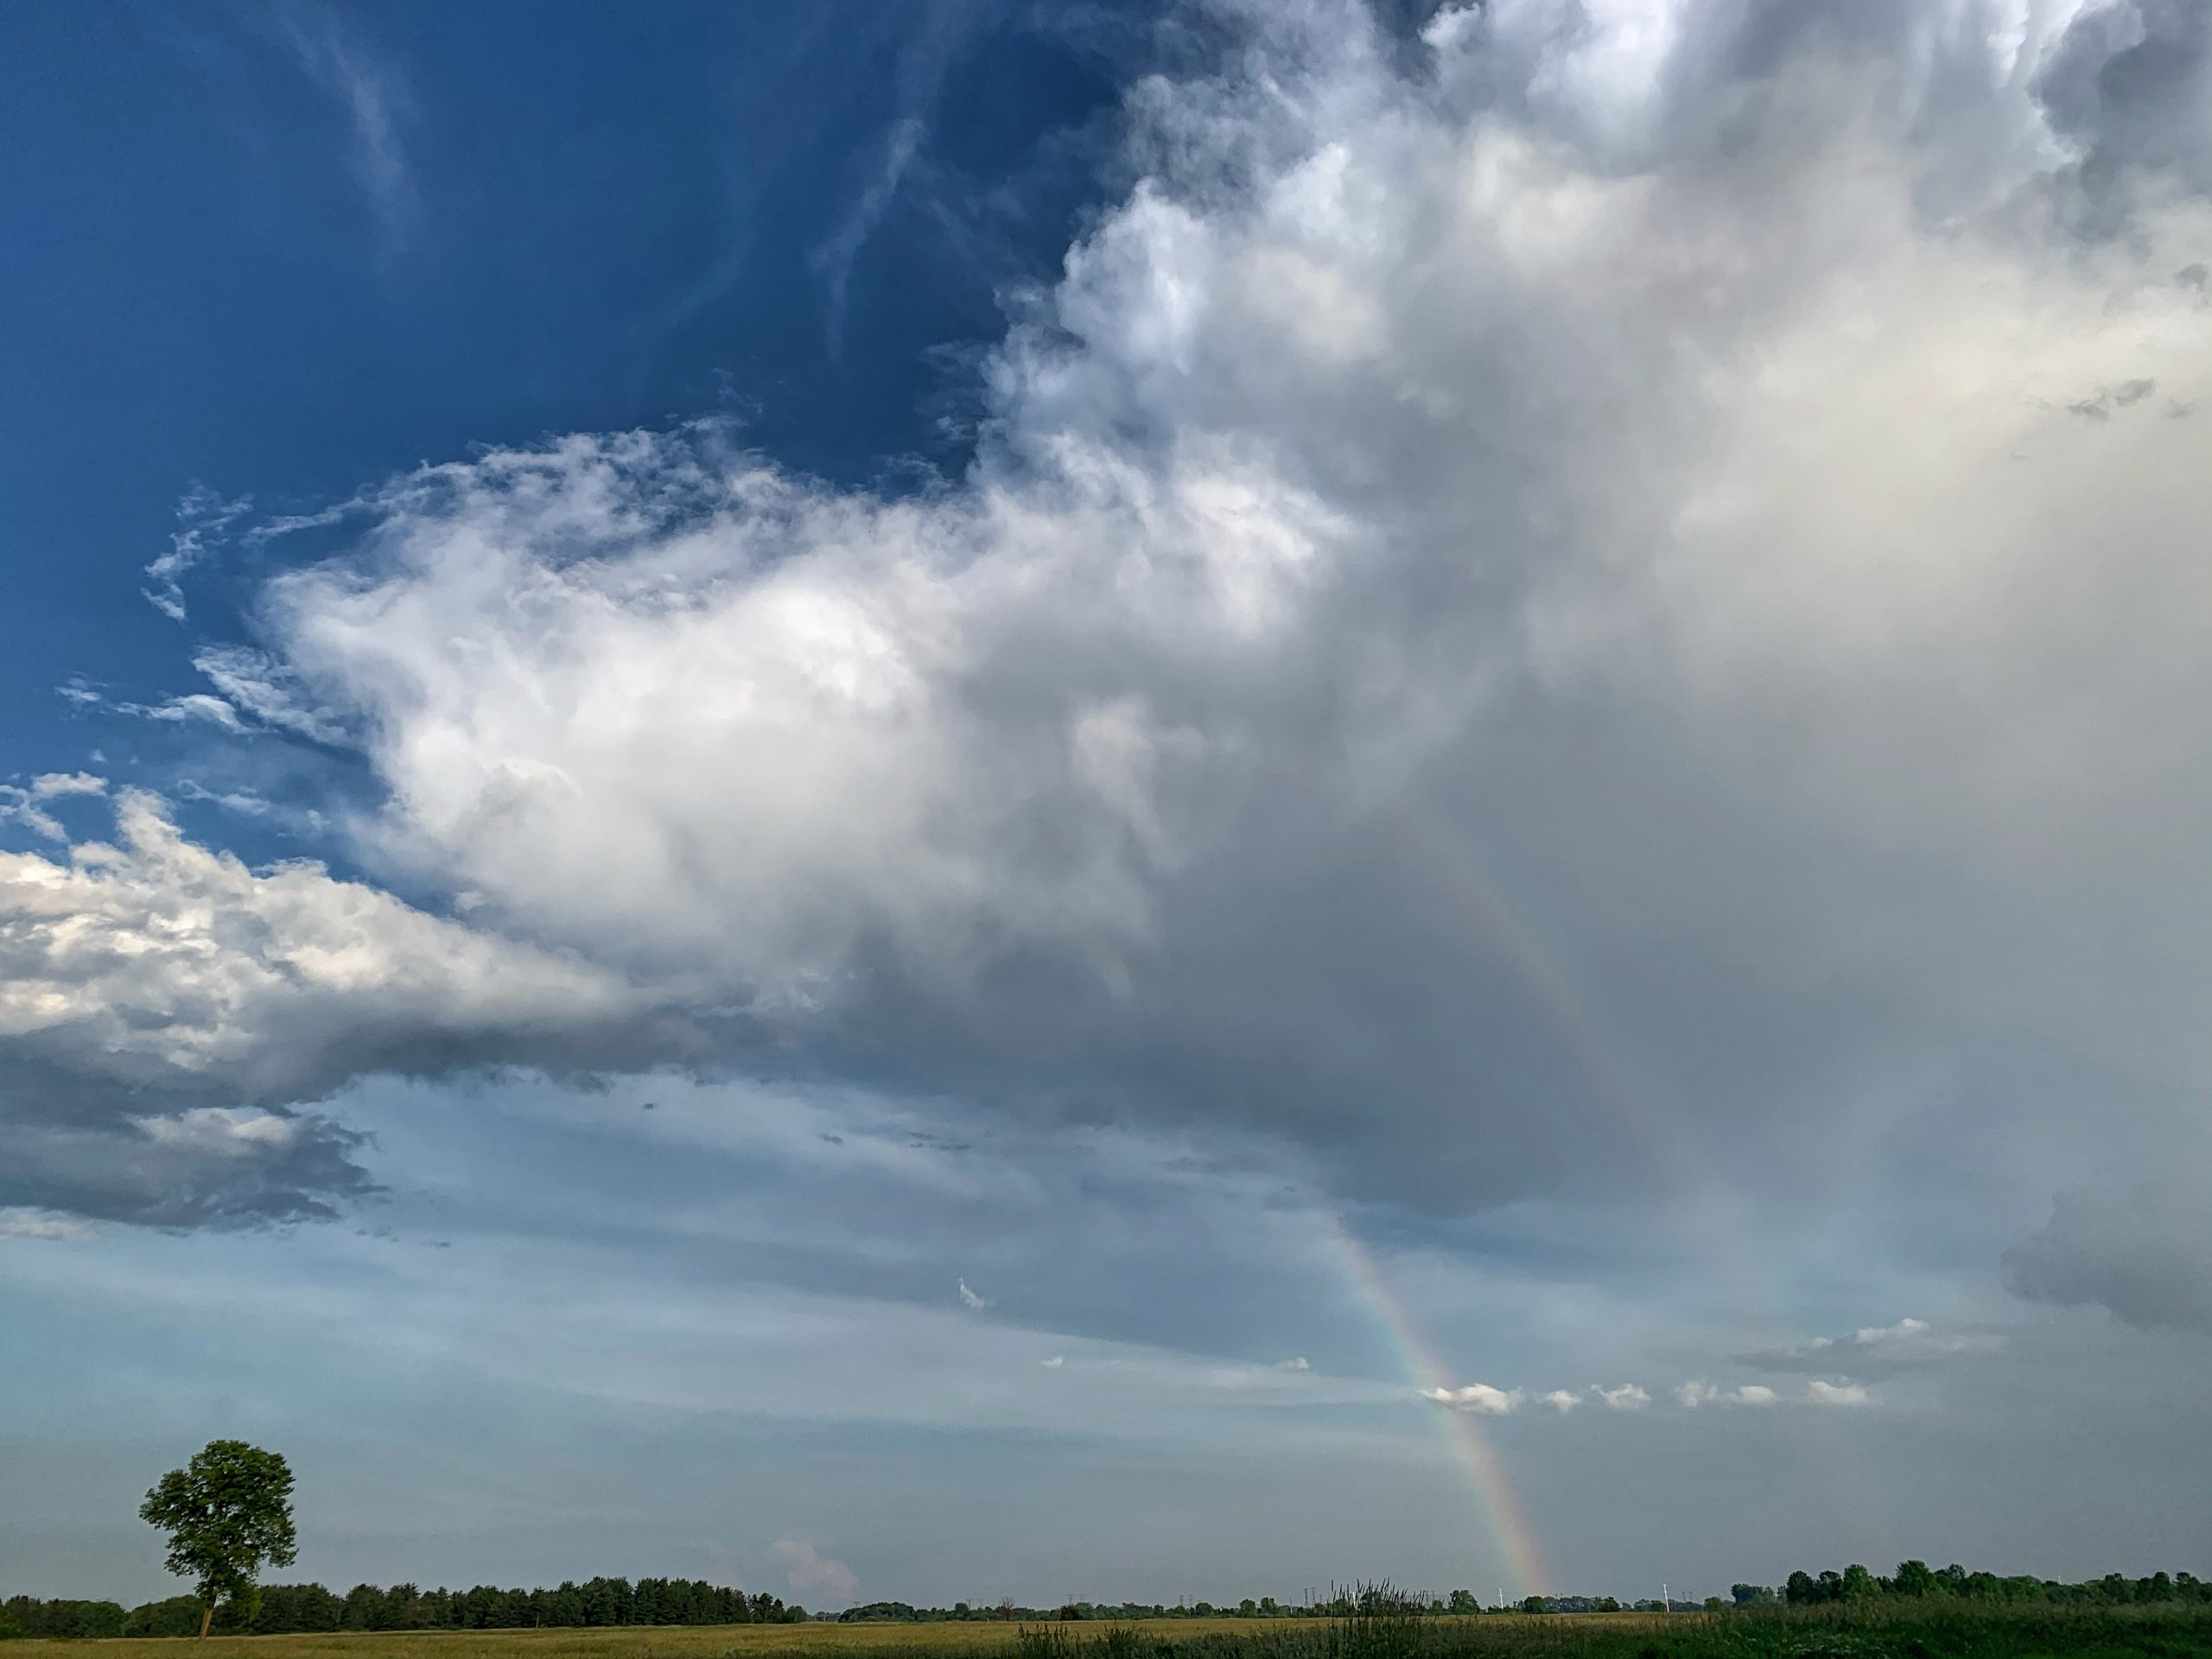 Just after a recent rain, an expansive scene emerges: a majestic blue sky, beautiful cloud formation, rainbow and lonely tree near the Fermilab Village. nature, landscae, sky, rain, cloud, rainbow, plant, tree Photo: Sudeshna Ganguly